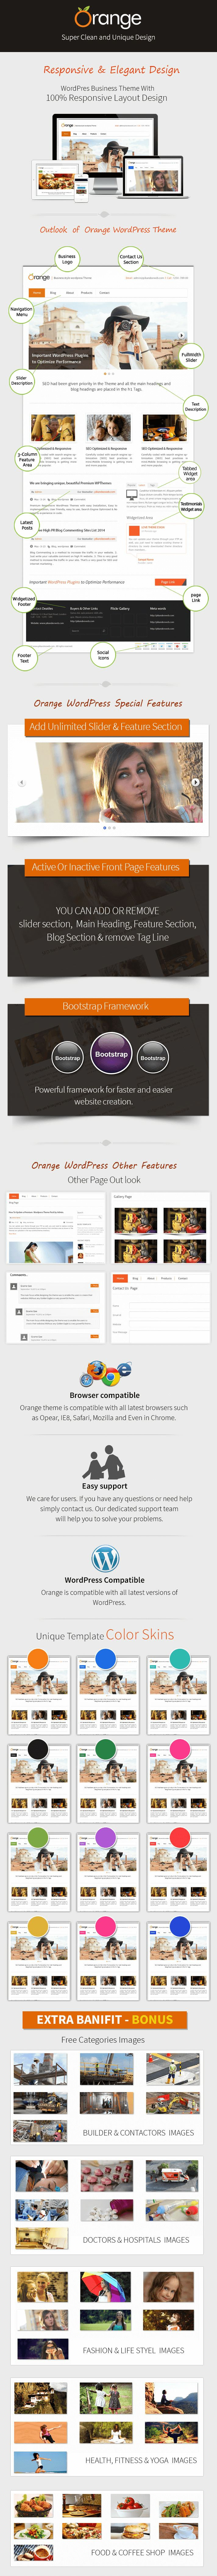 ORANGE - #Multipurpose #Business #WordPress #Theme - Only $9 What includes in this Theme: #Free #image #bunches for #different #domains. Get Free Item Updates. Get Free #On-Going #Support. #Unique #template #color #skins. Access to Item #Documentation. #Standard #License (You can use this on personal, commercial or client projects.)